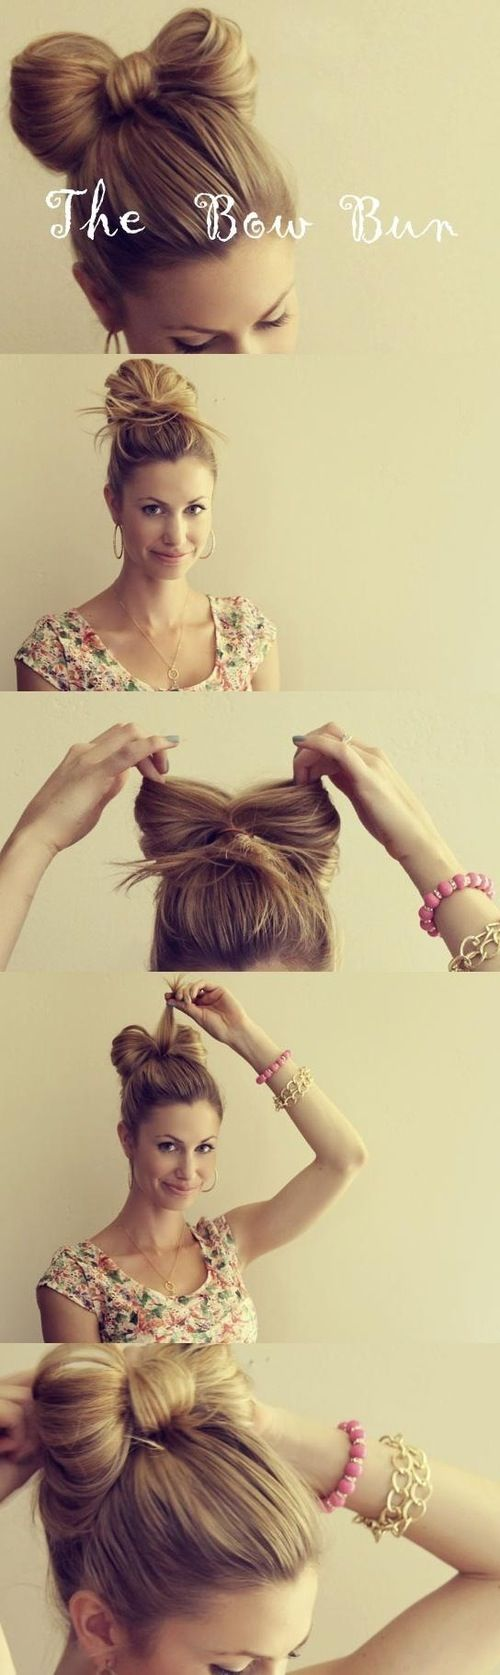 I Want to do that 2! Now just look the end result... ( ;